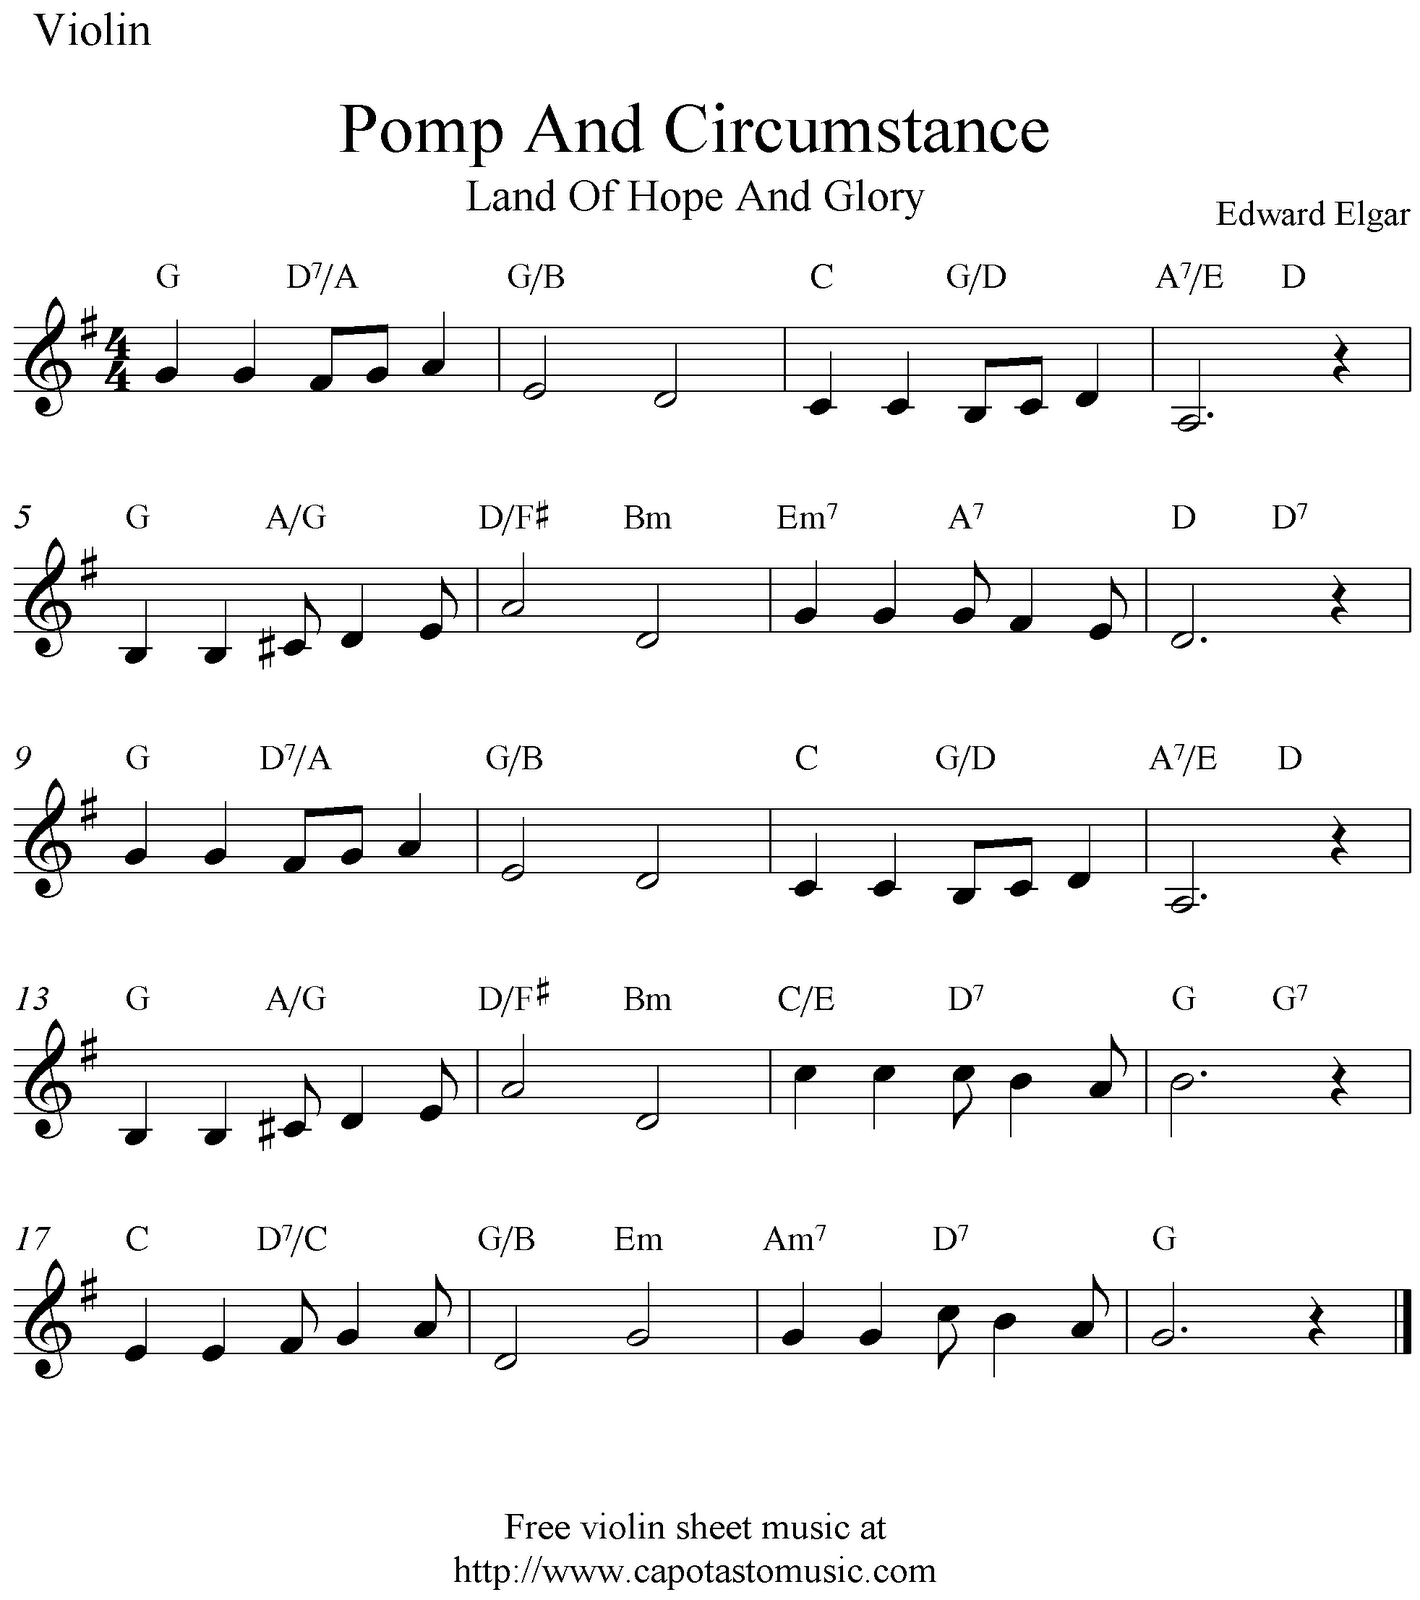 Grenade Flute Sheet Music With Lyrics: Free Sheet Music Scores: Pomp And Circumstance (Land Of